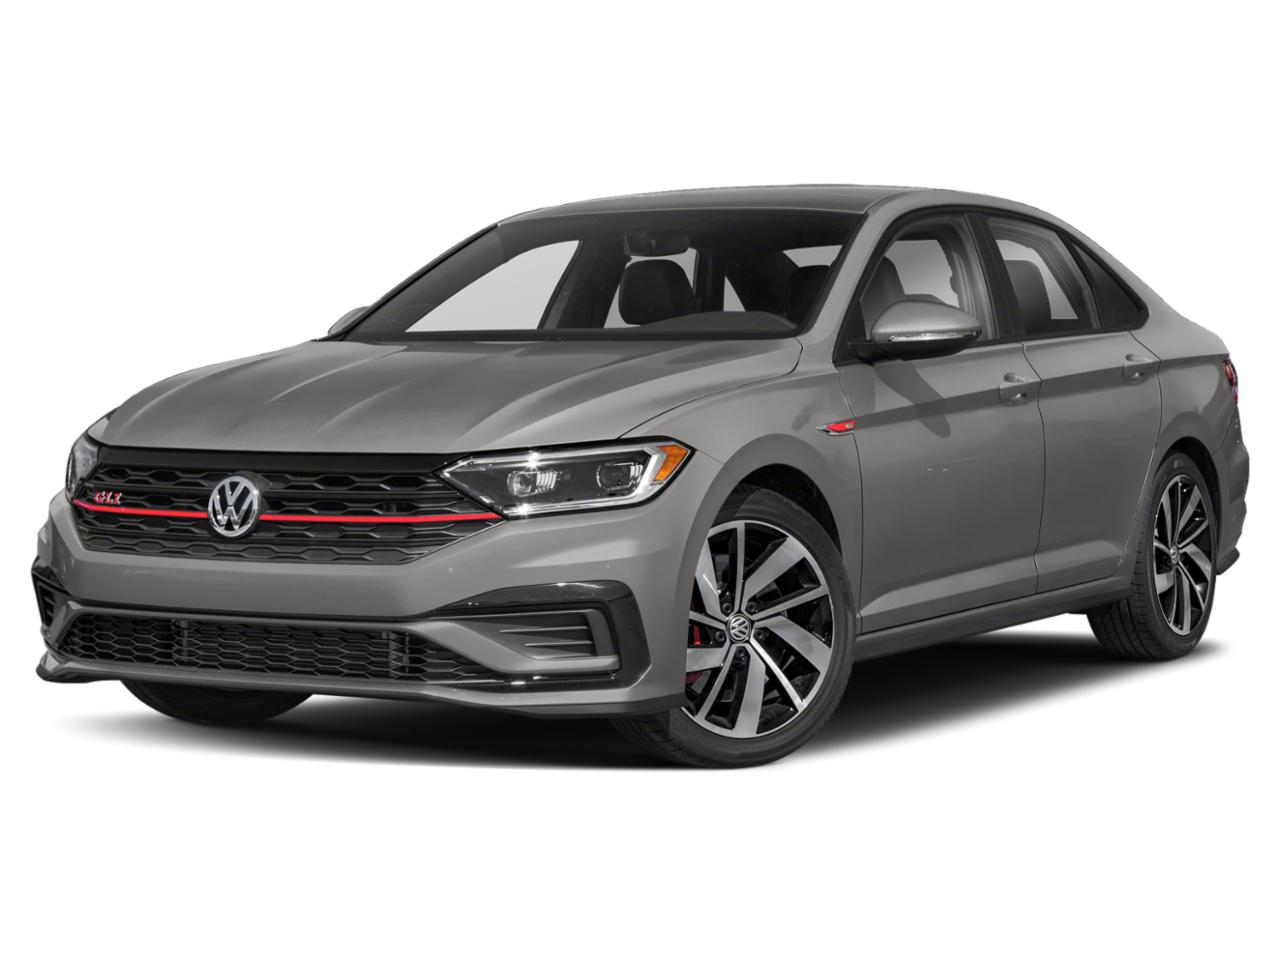 2021 Volkswagen Jetta GLI Vehicle Photo in Union City, GA 30291